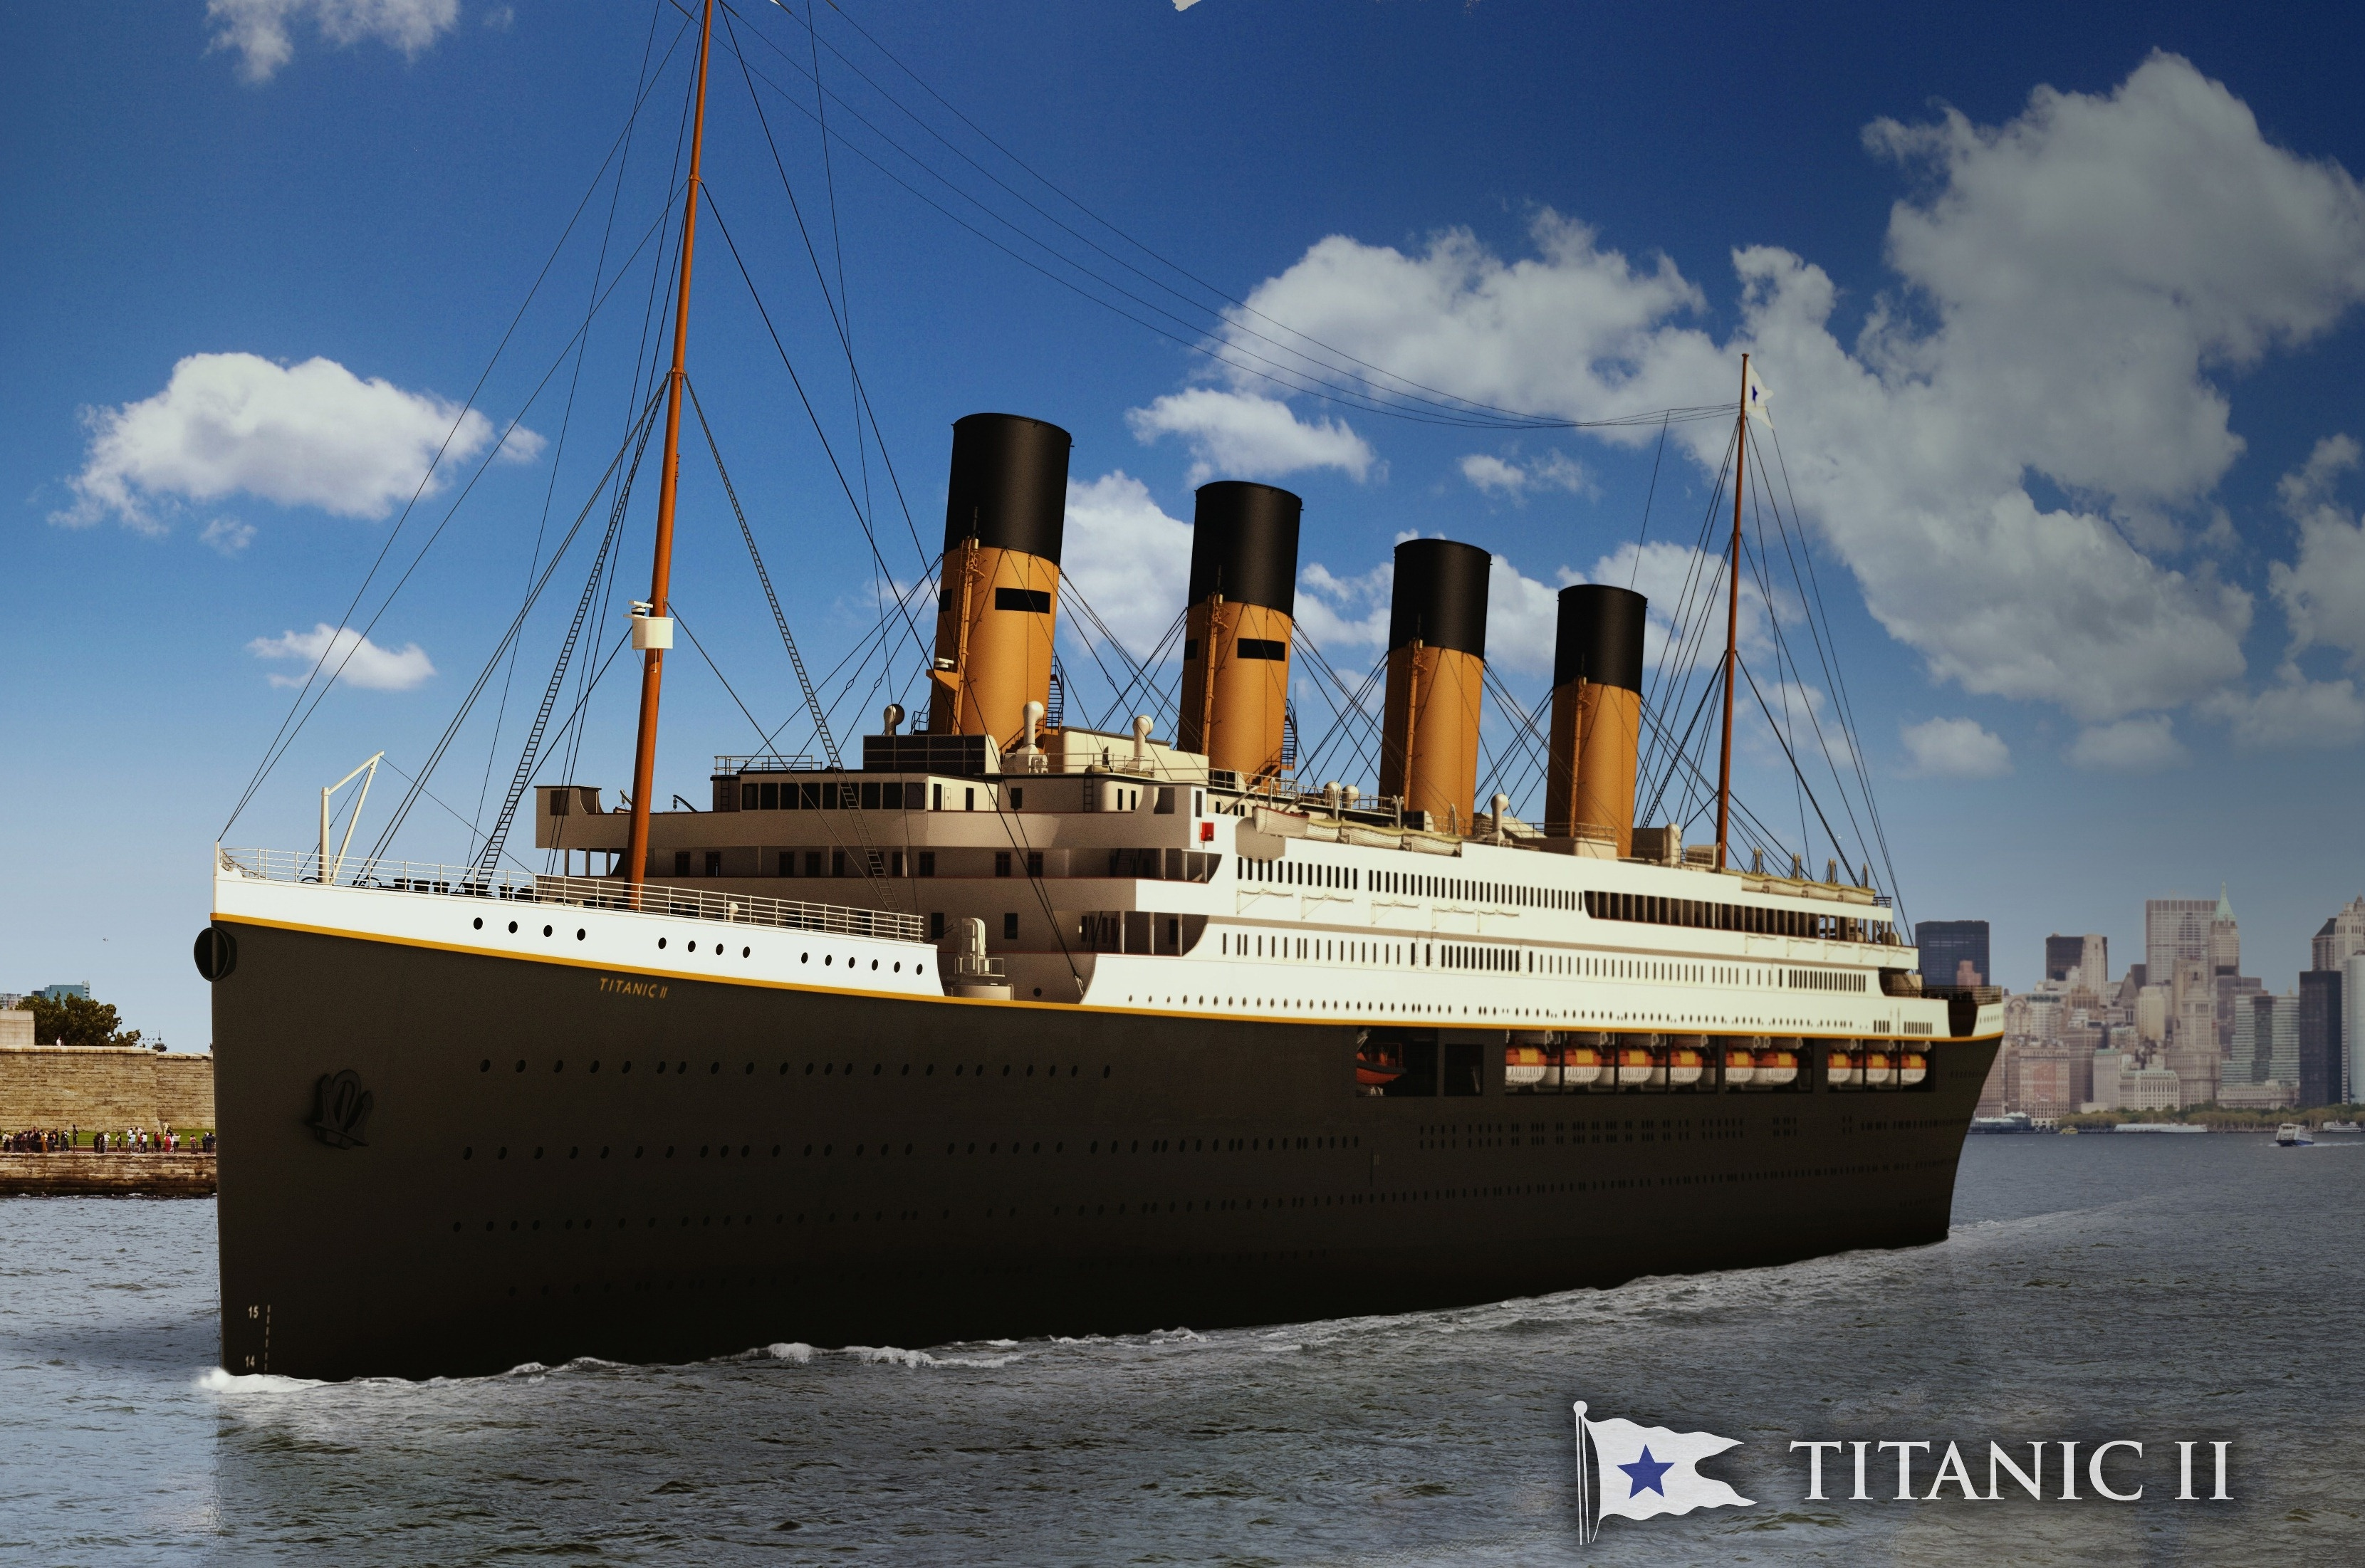 Titanic II Is All Set To Sail In 2022 Following The Route Of Original Ship